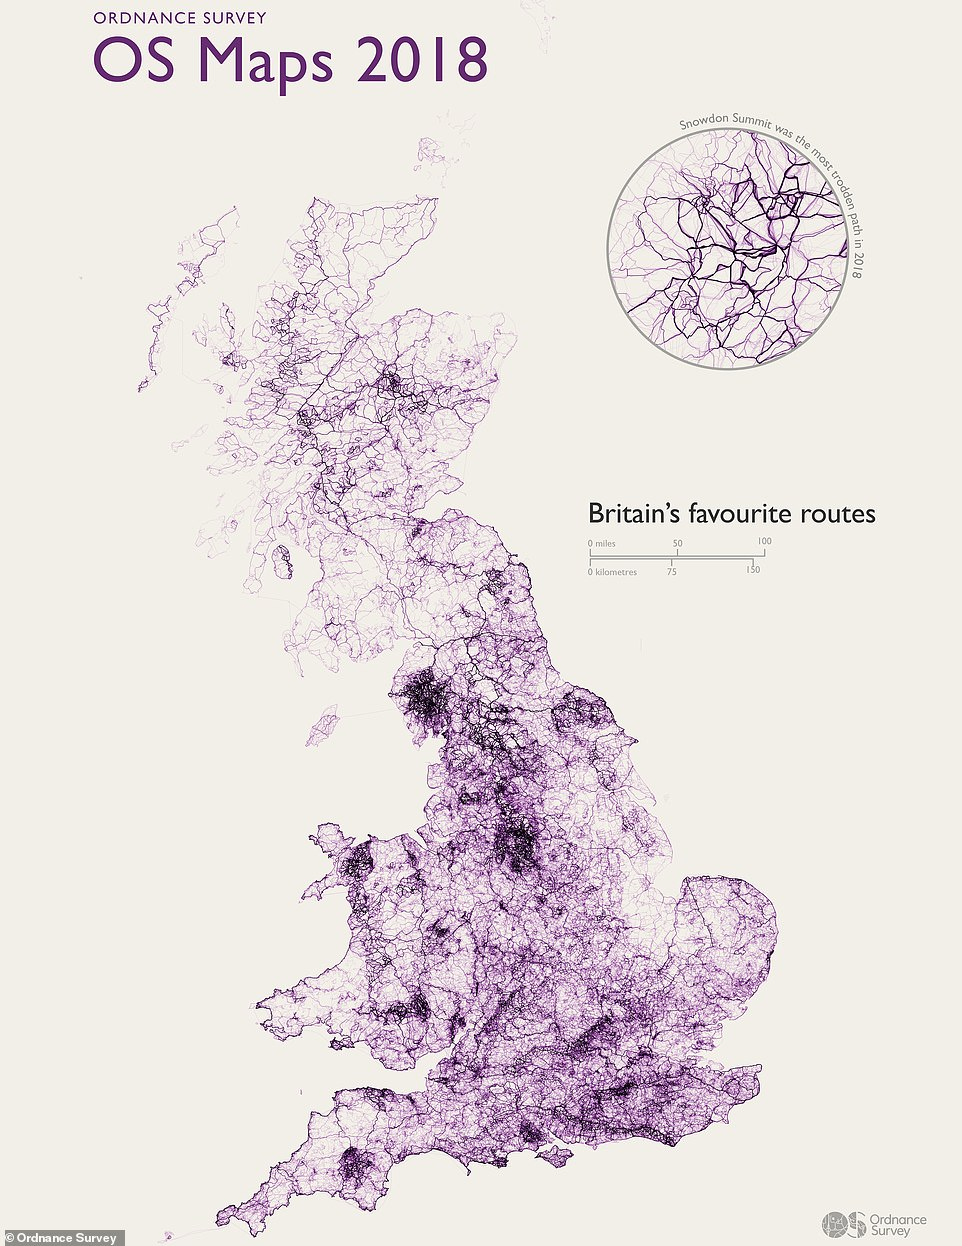 The Ordnance Survey analysed over 818,000 public walking and cycling routes created over the past year using its digital map and planning tool, OS Maps